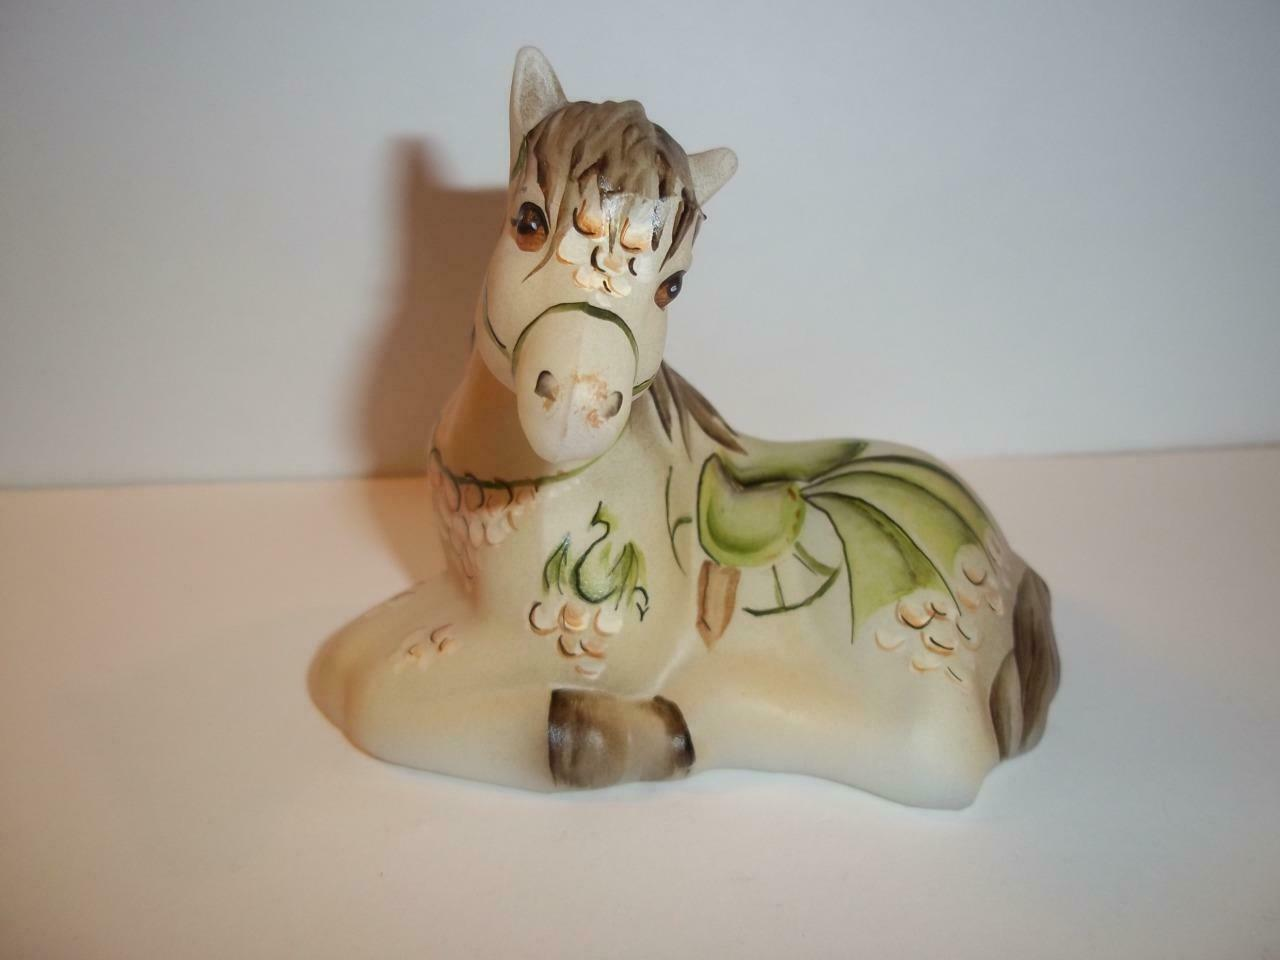 Fenton Glass Dragon Carousel Horse Pony Figurine FGS Excl Ltd Ed #6/12 M. Kibbe